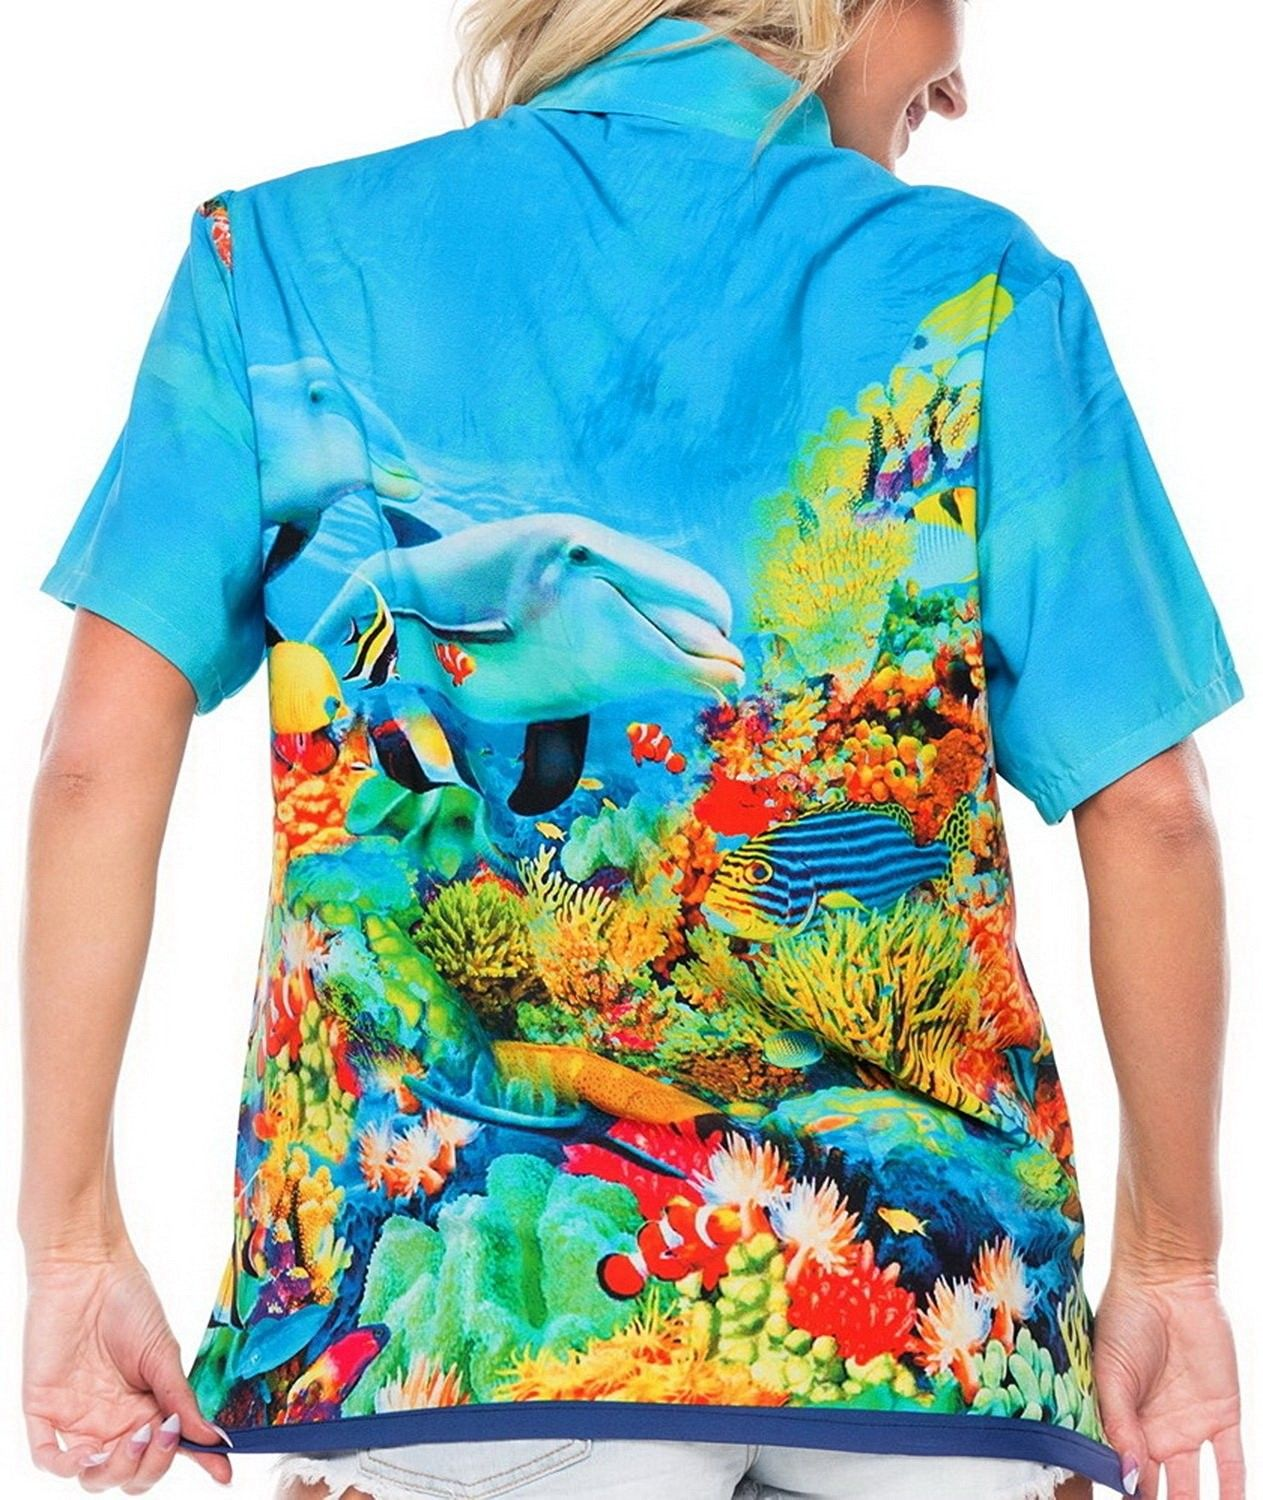 607892710c Ladies Hawaiian Shirt Tank Blouses Beach Top Casual Aloha Boho ...